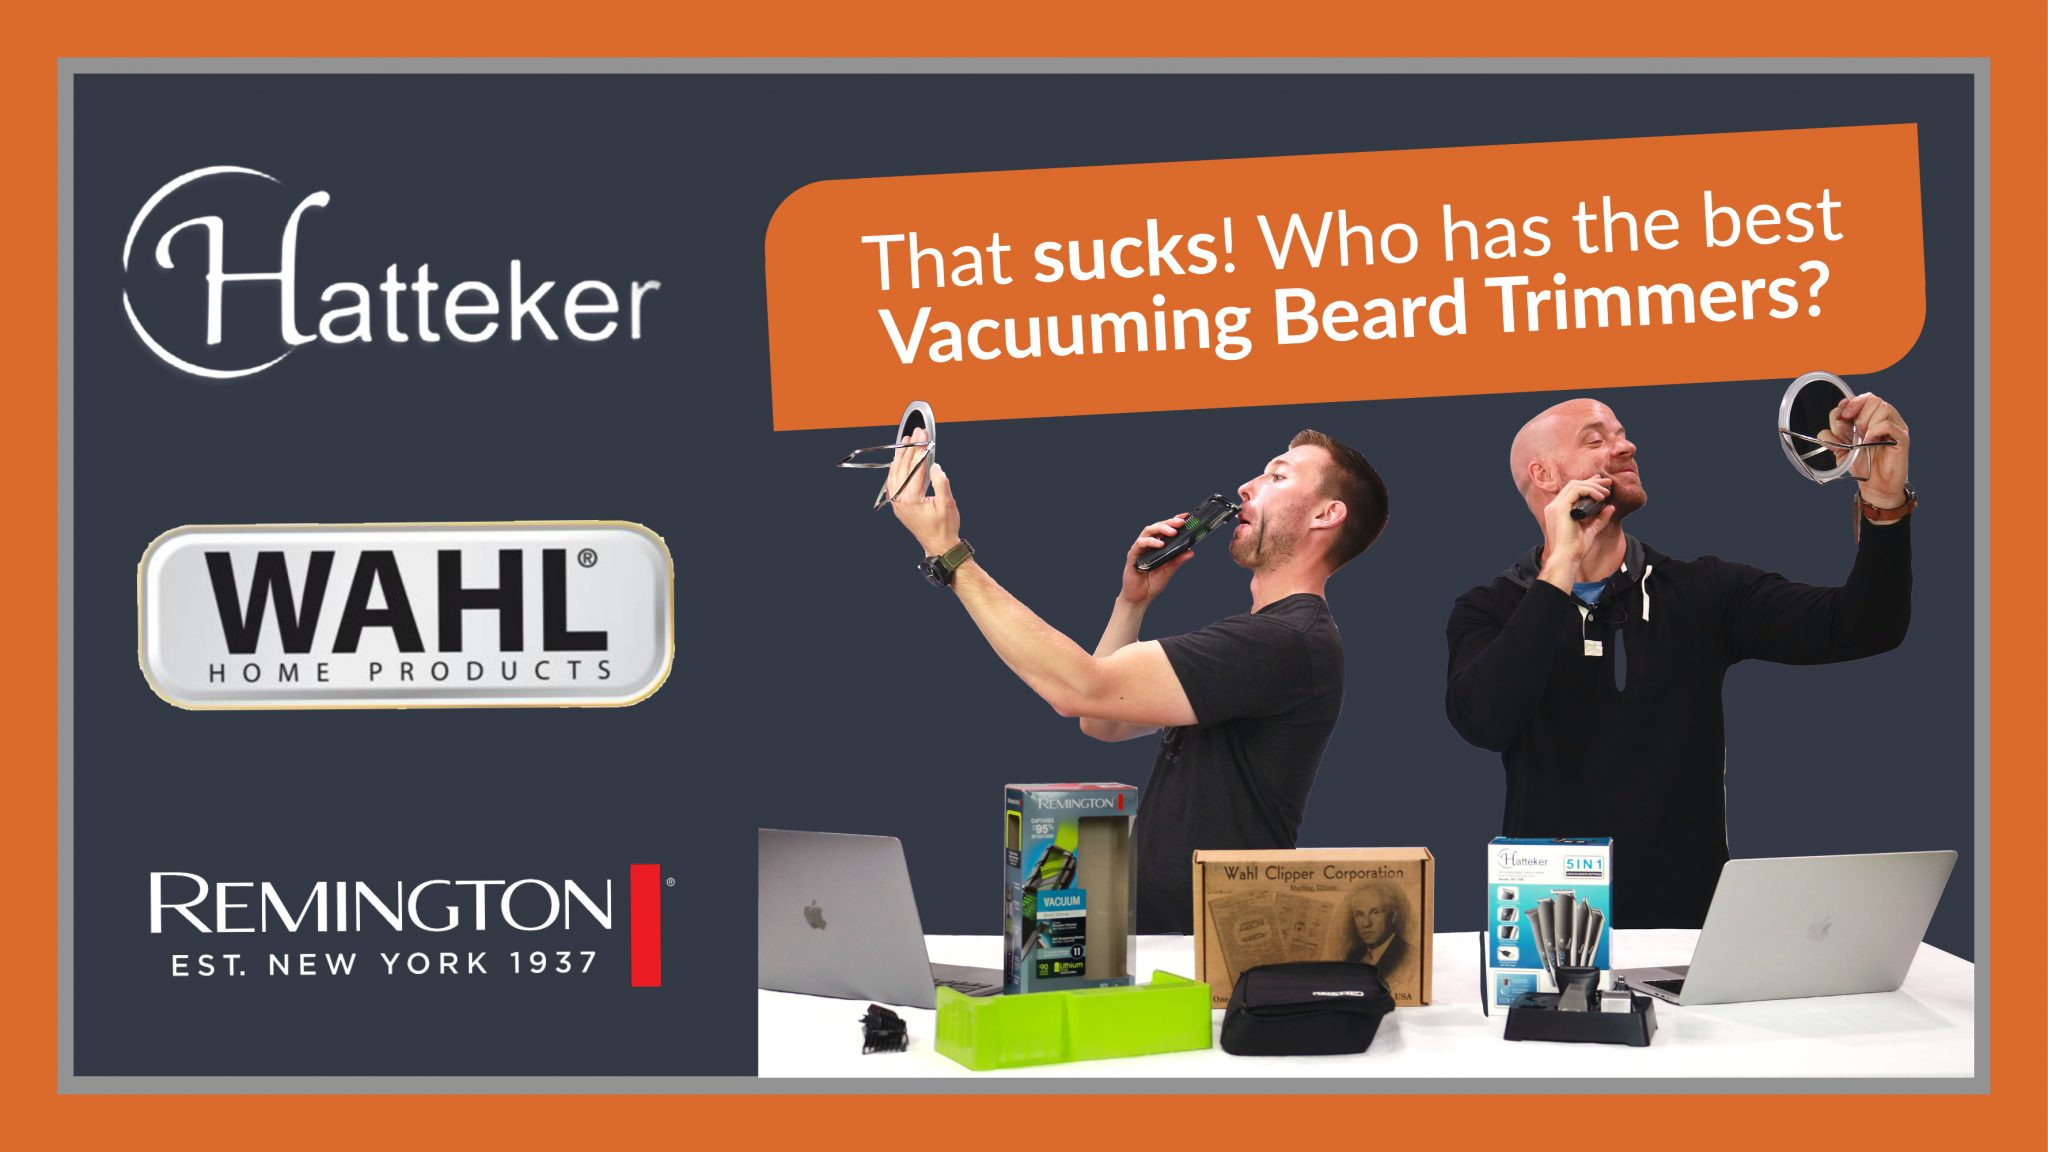 That Sucks! Who has the best Vacuuming Beard Trimmer?